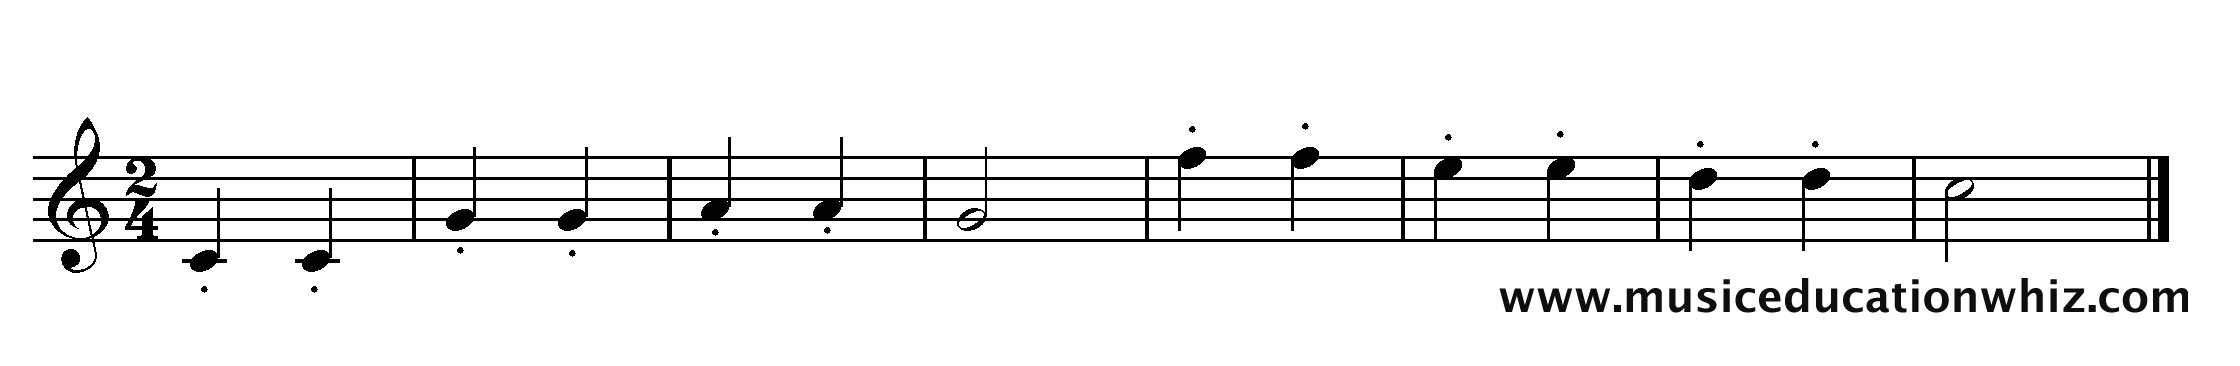 The music for 'Twinkle Twinkle Little Star' with staccato markings.